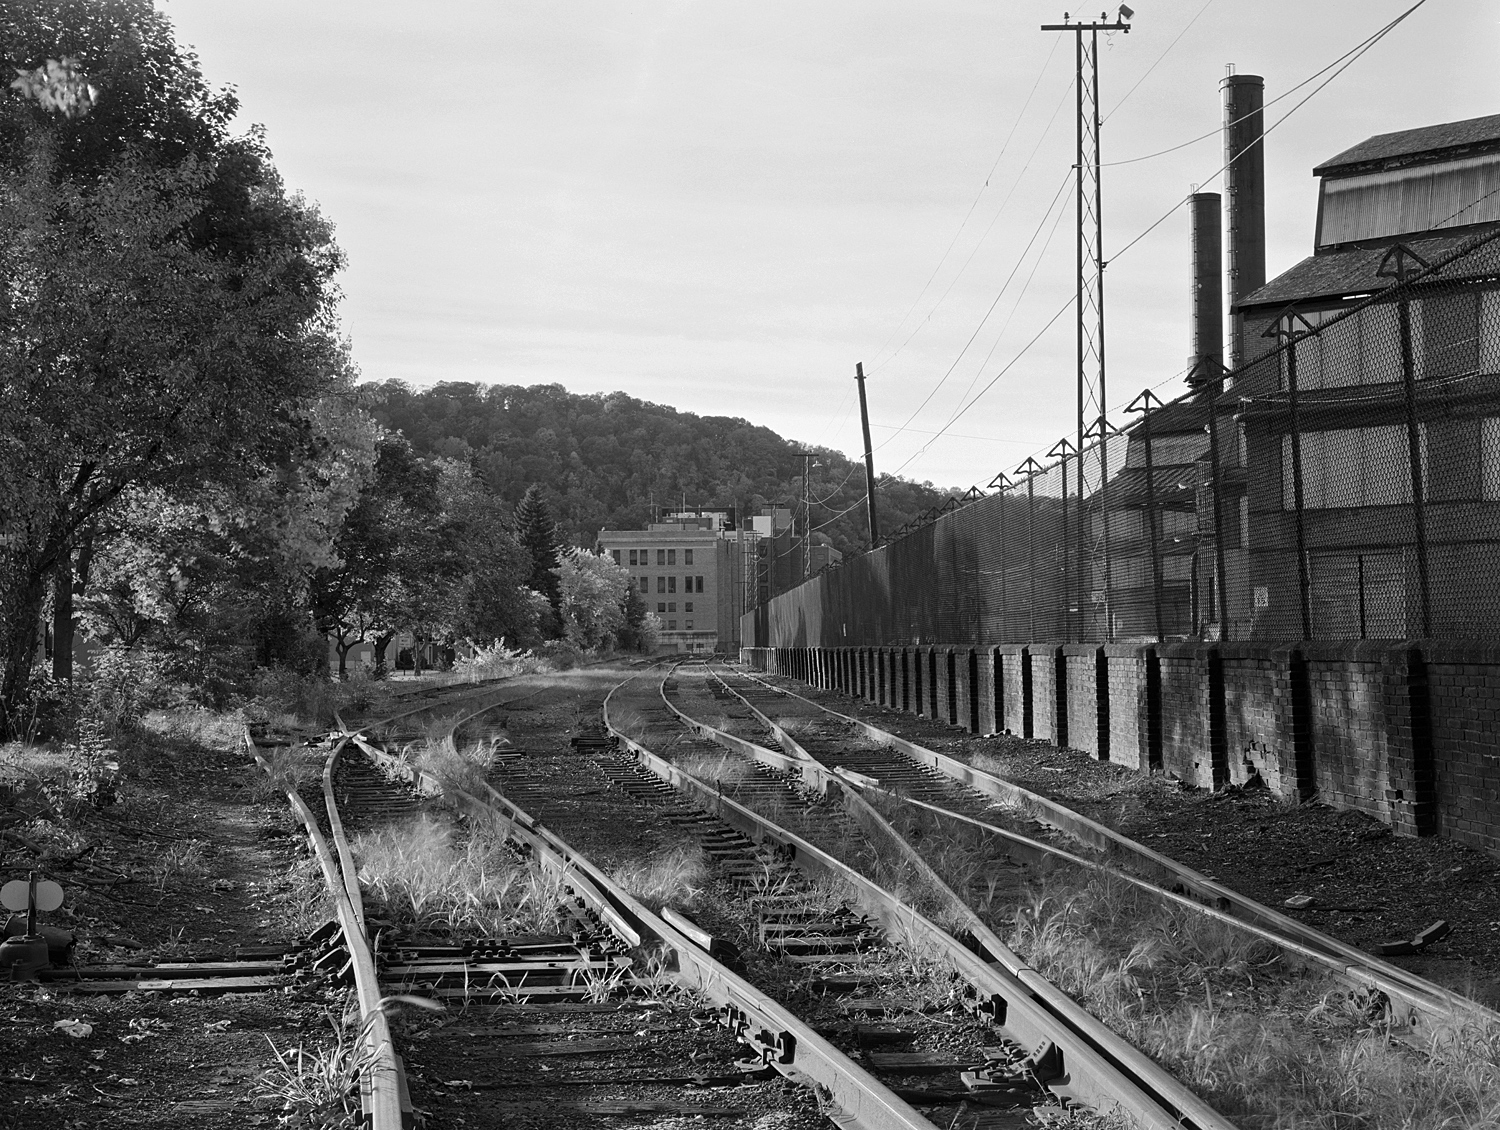 View of trackage along Washington Street looking Northwest. Note the Gautier Works to the right. From  from the track layout this appeared to be an interchange area with B&O S&C Branch and the C&BL.